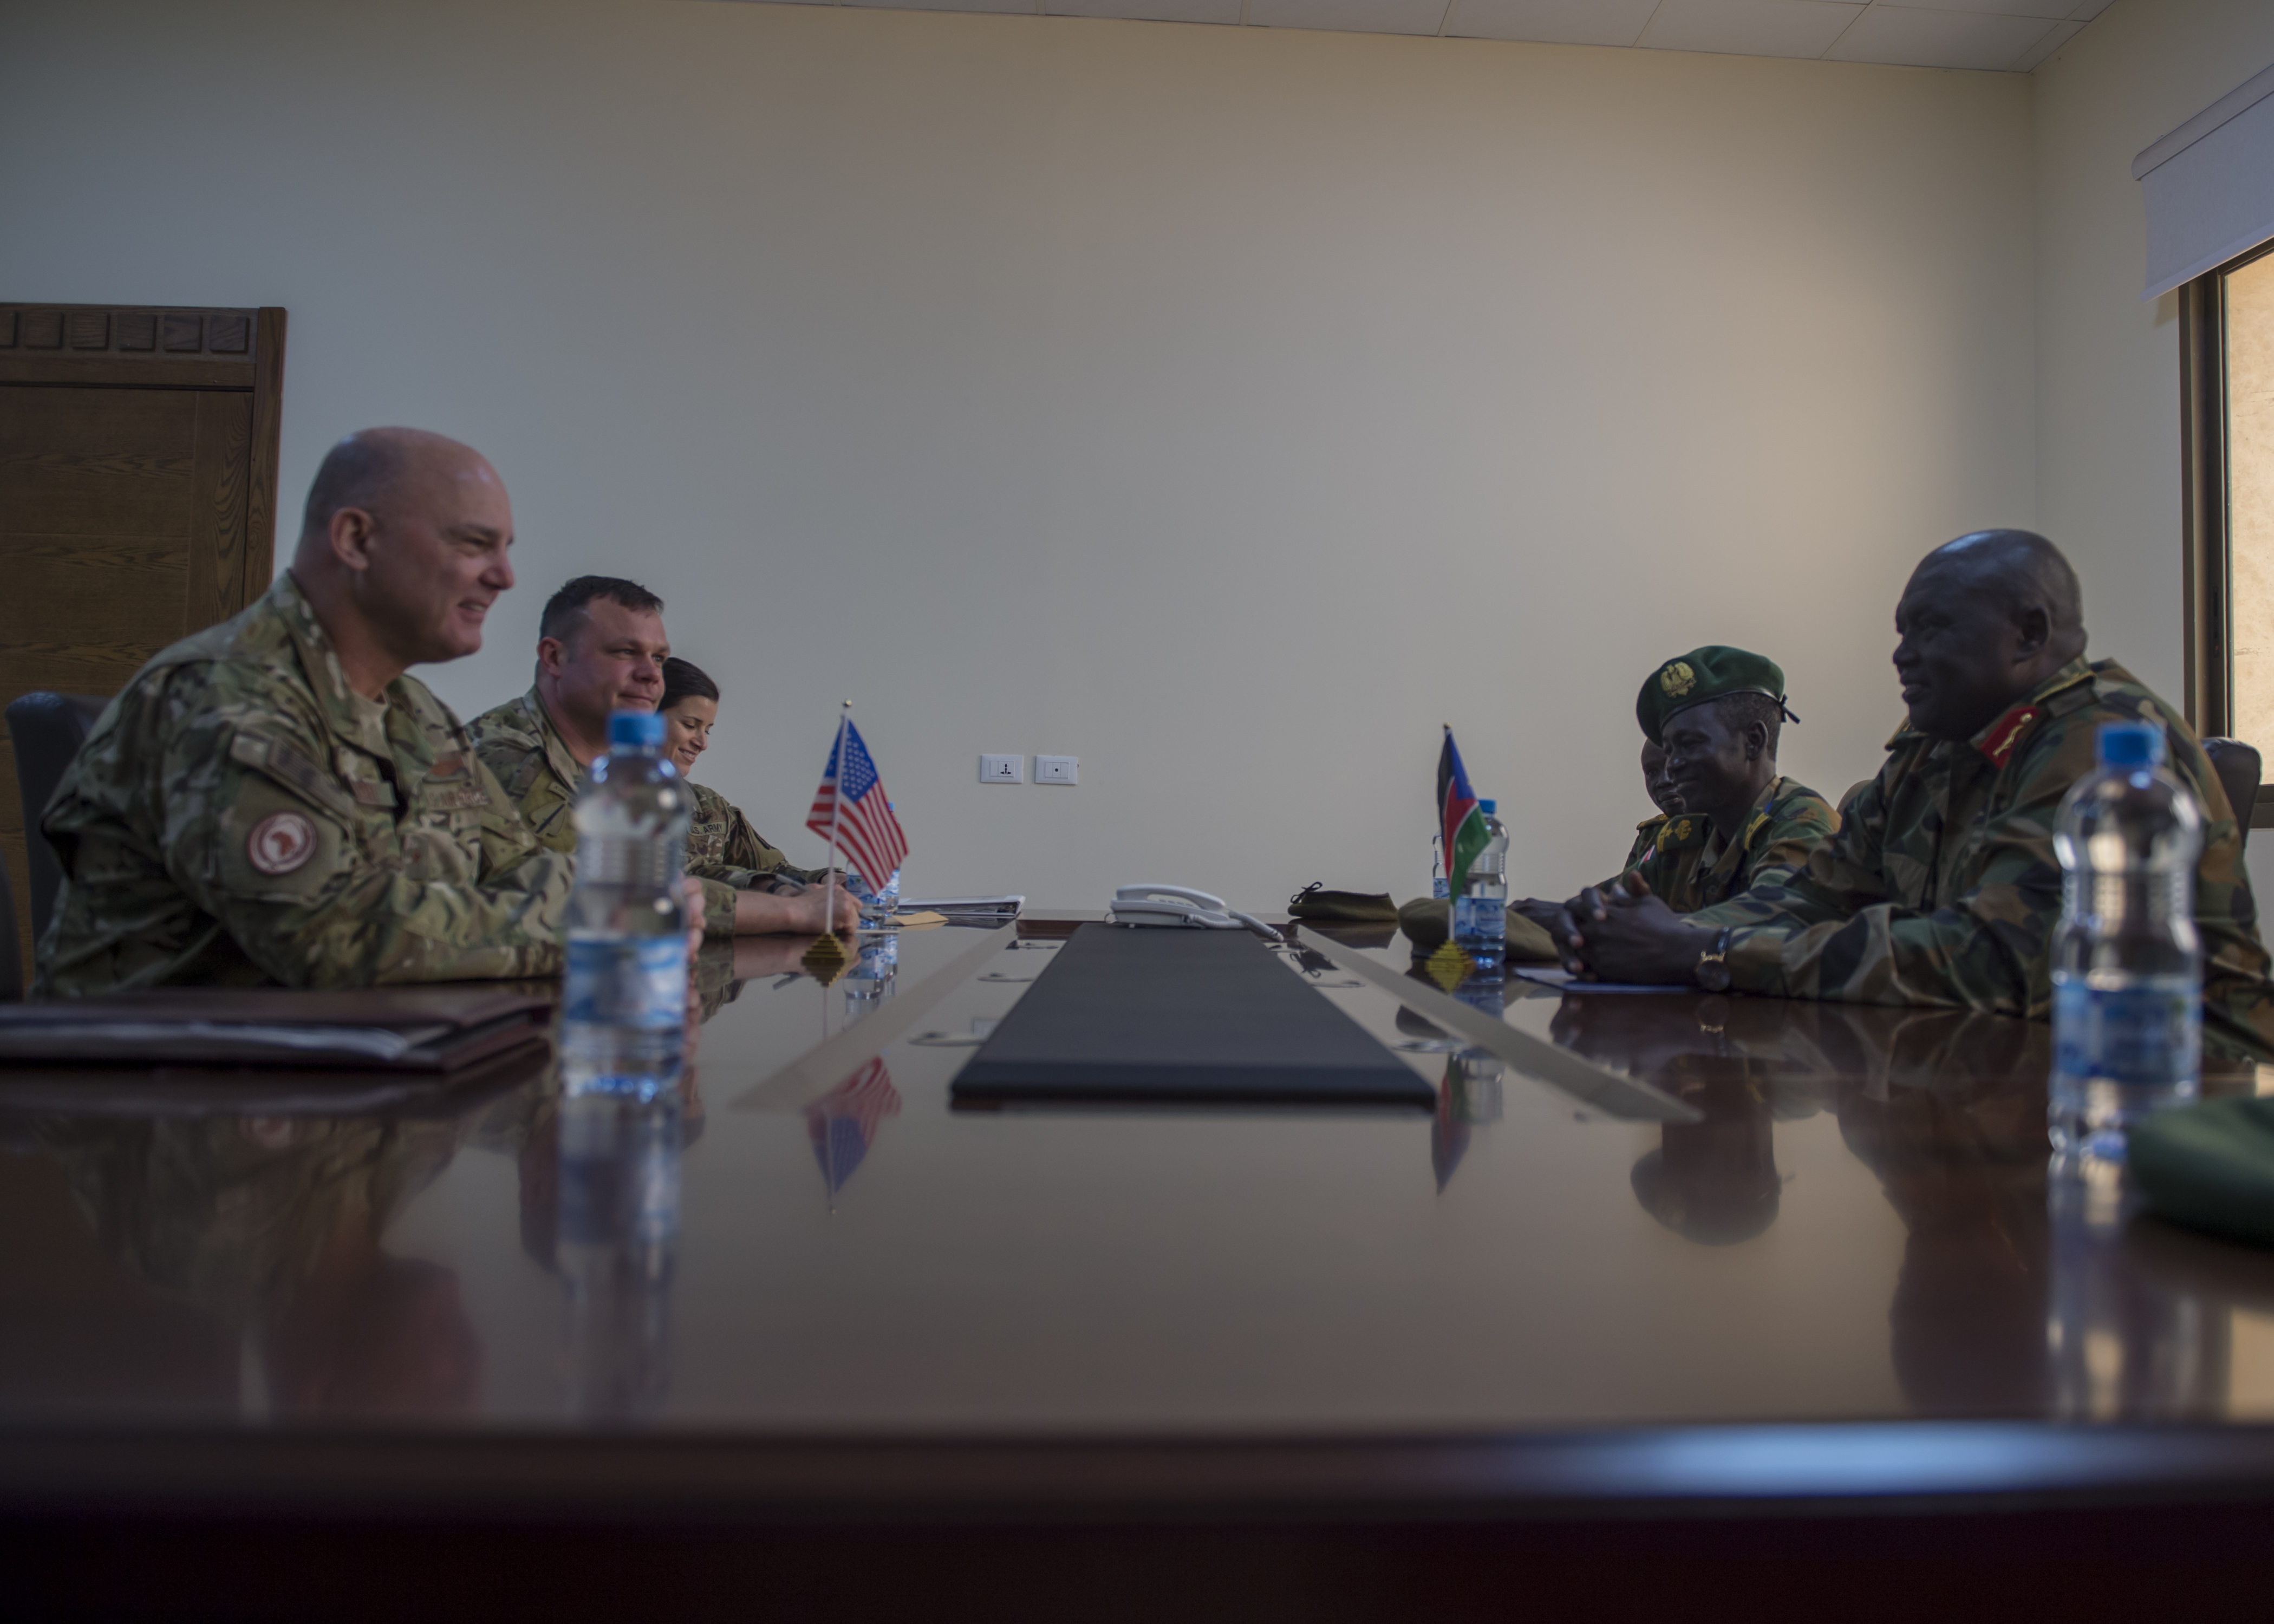 U.S. Air Force Brig. Gen. James R. Kriesel, deputy commanding general of Combined Joint Task Force-Horn of Africa (CJTF-HOA), meets with South Sudan People's Defence Forces (SSPDF) chief of military intelligence, Maj. Gen. Rin Tueny Mabor, August 15, 2019. The meeting marks the first time a United States General had visited with the SSPDF in South Sudan. (U.S. Air Force Photo by Senior Airman Codie Trimble)